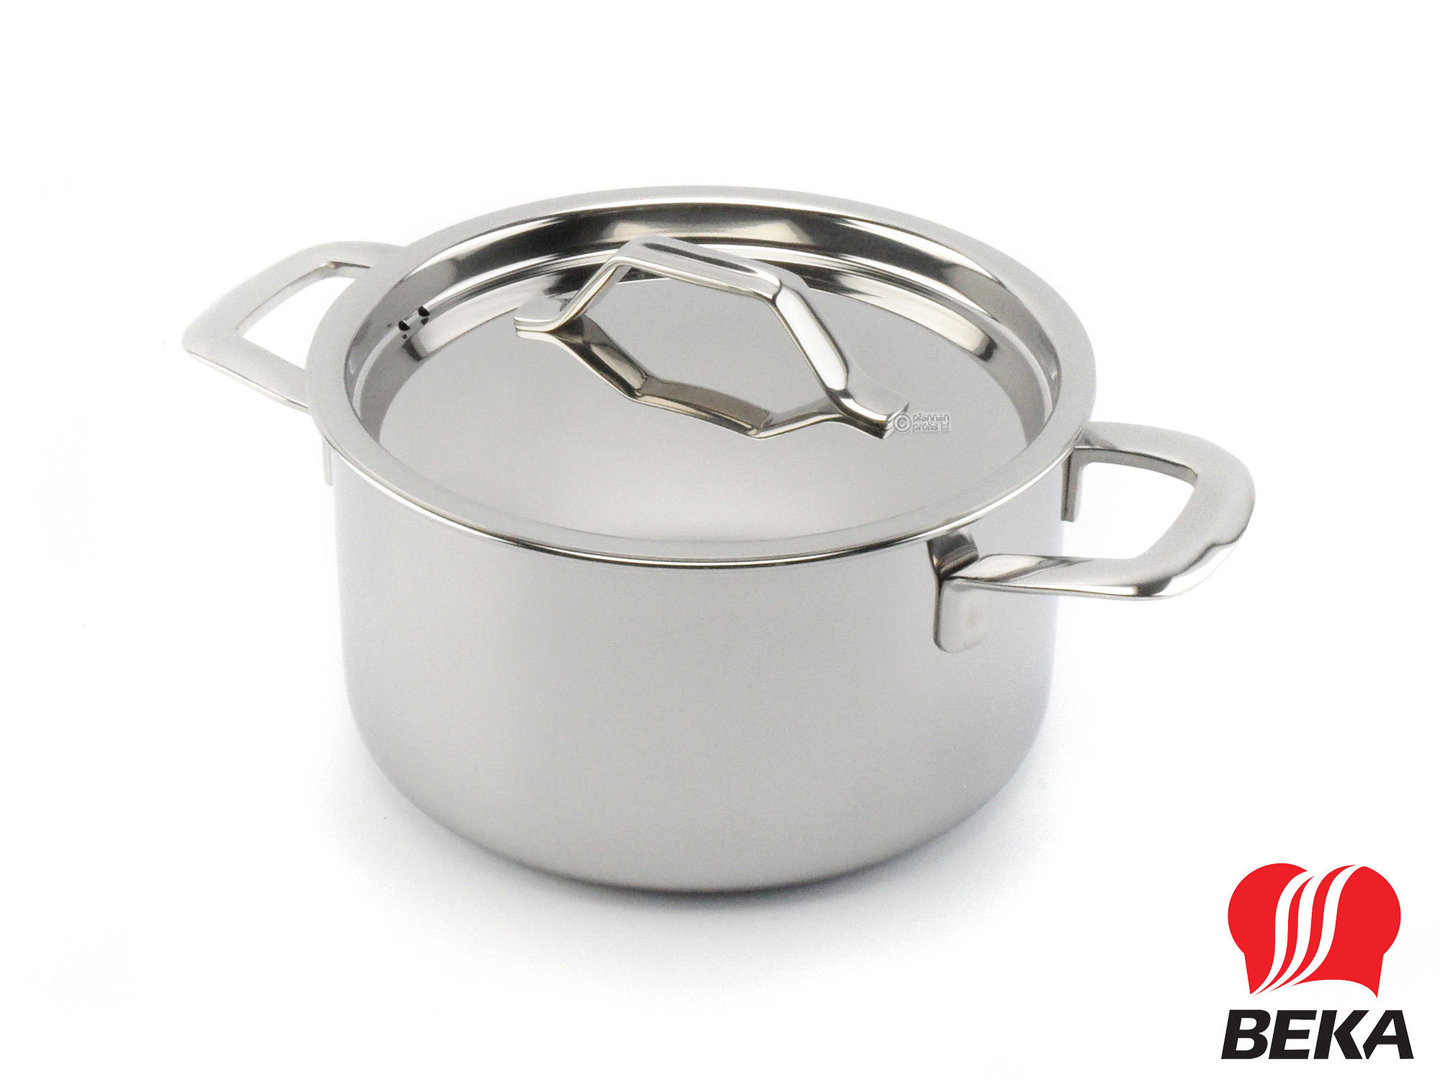 BEKA 3-ply casserole TRI-LUX 16 cm multi-layer stainless steel with lid